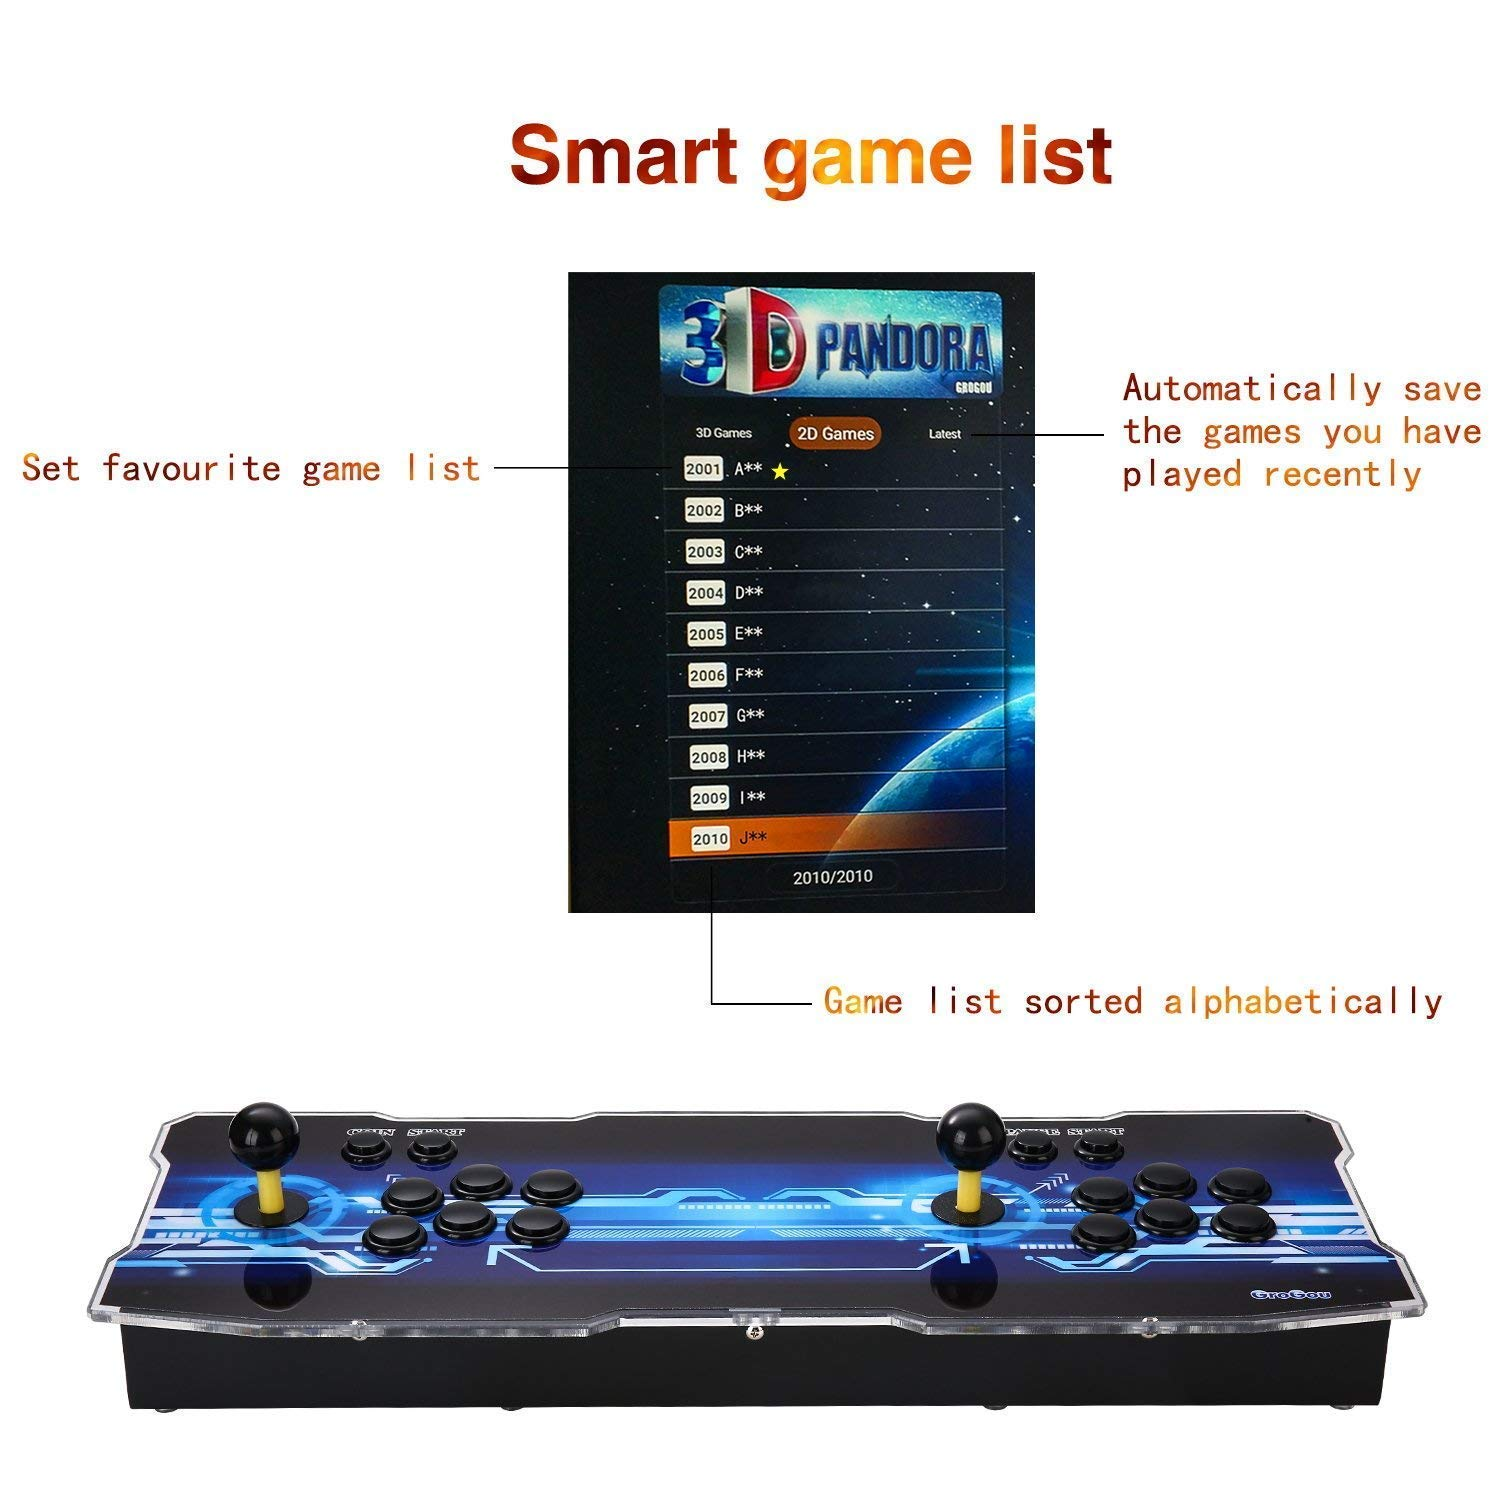 [2350 HD Retro Games] 3D Pandoras Box Arcade Video Game Console 1080P Game System with 2350 Games Supports 3D Games (Black) 1920x1080 by TanDer (Image #3)